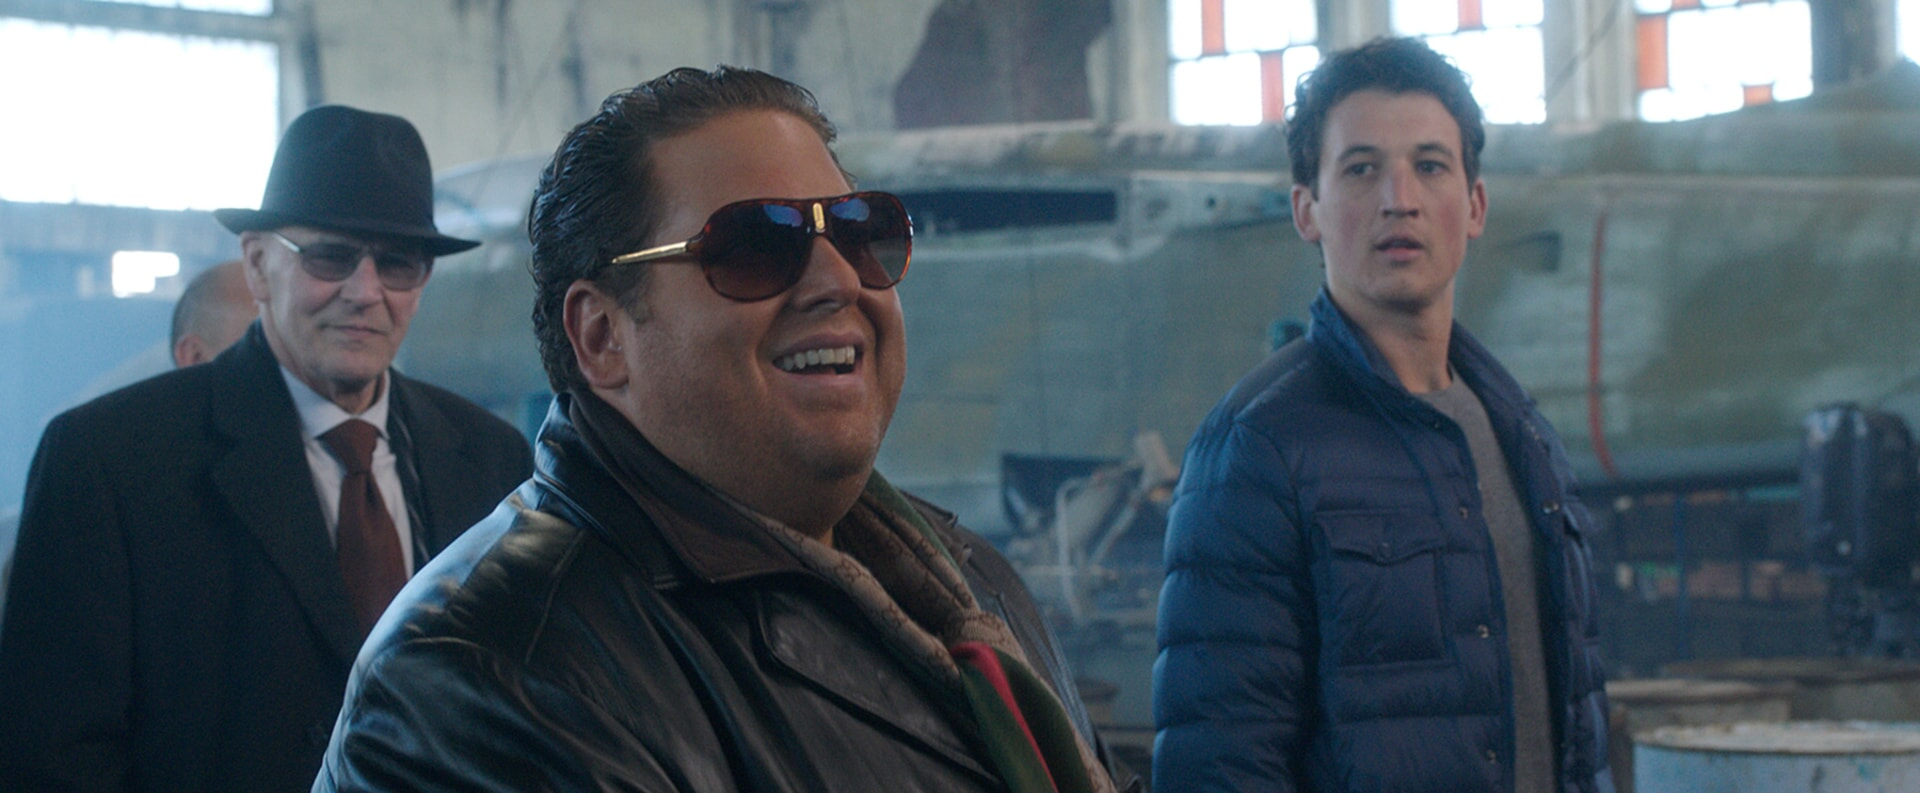 """ANDREI FINTI as Yili Pinari, JONAH HILL as Efraim and MILES TELLER as David in Warner Bros. Pictures' comedic drama (based on true events) """"WAR DOGS,"""" a Warner Bros. Pictures release."""